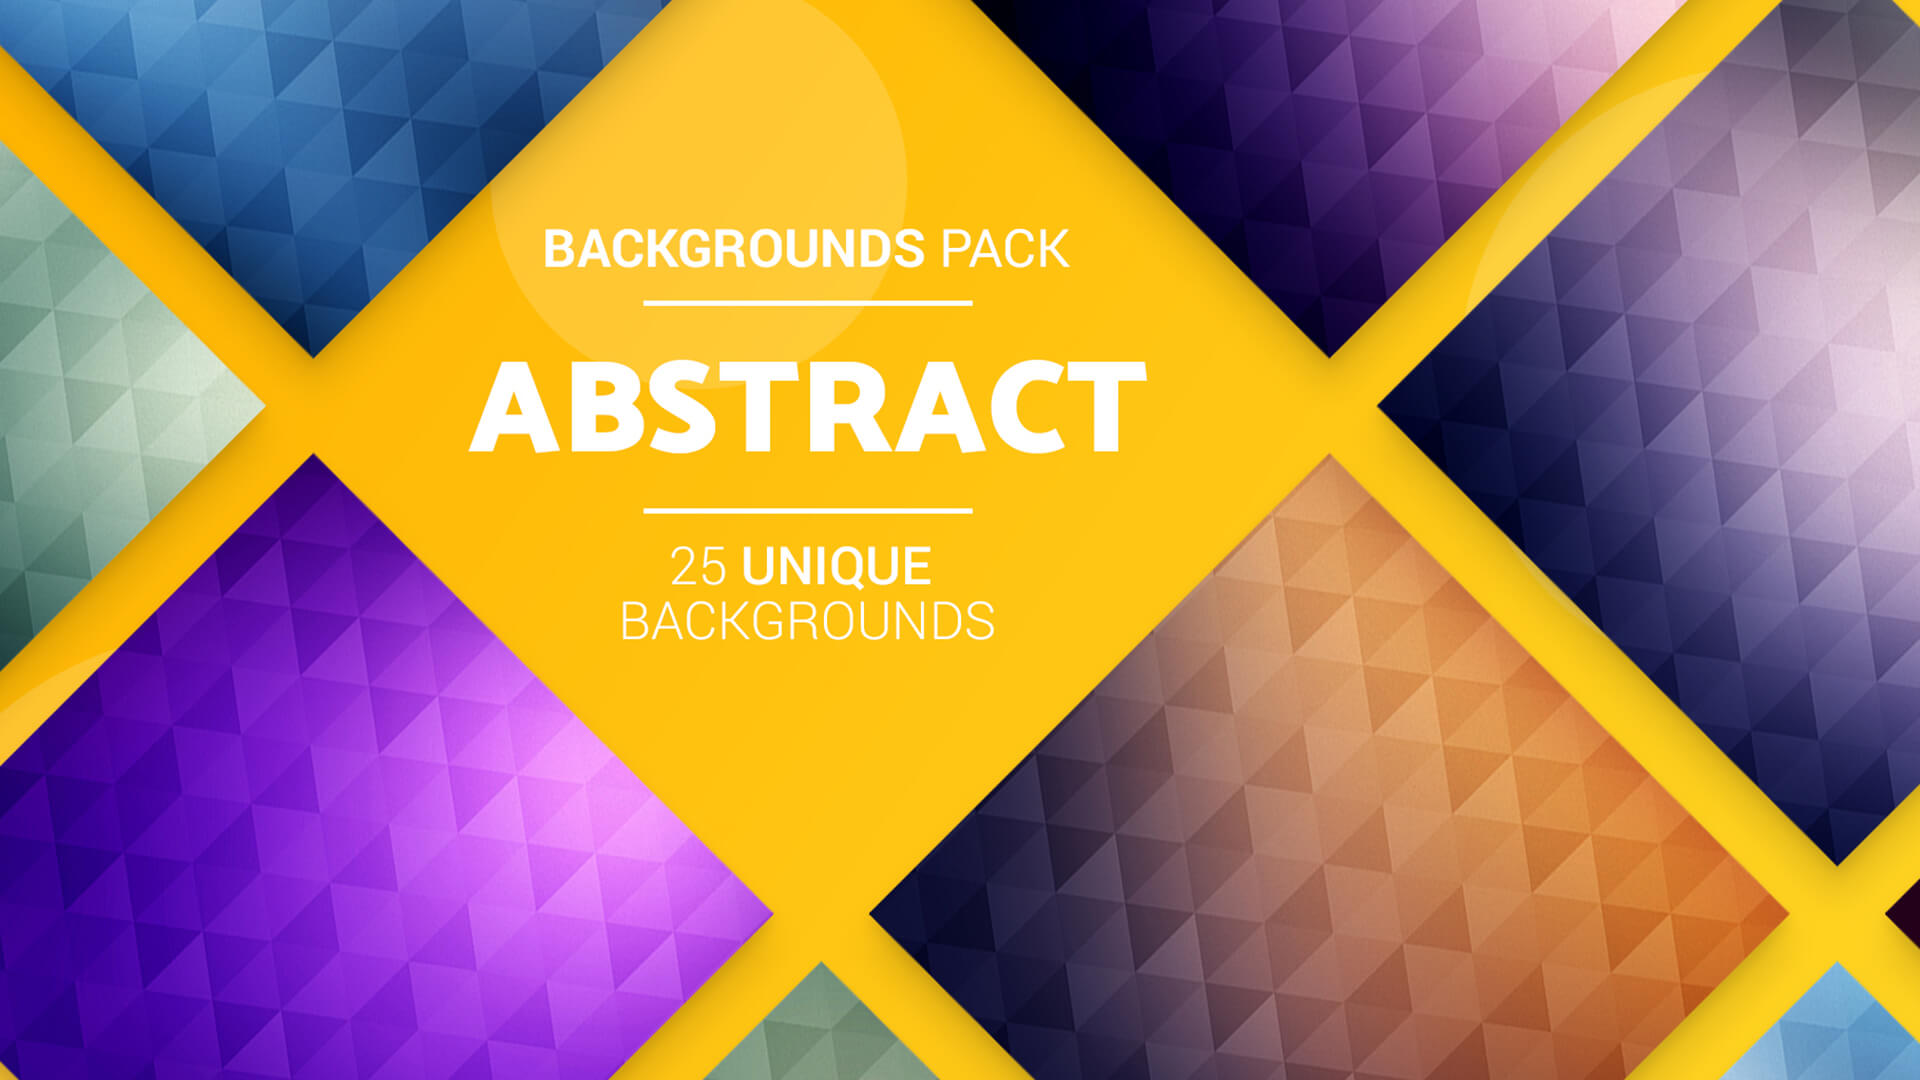 The Big Graphic Design Resources Bundle - 25 Abstract BGs